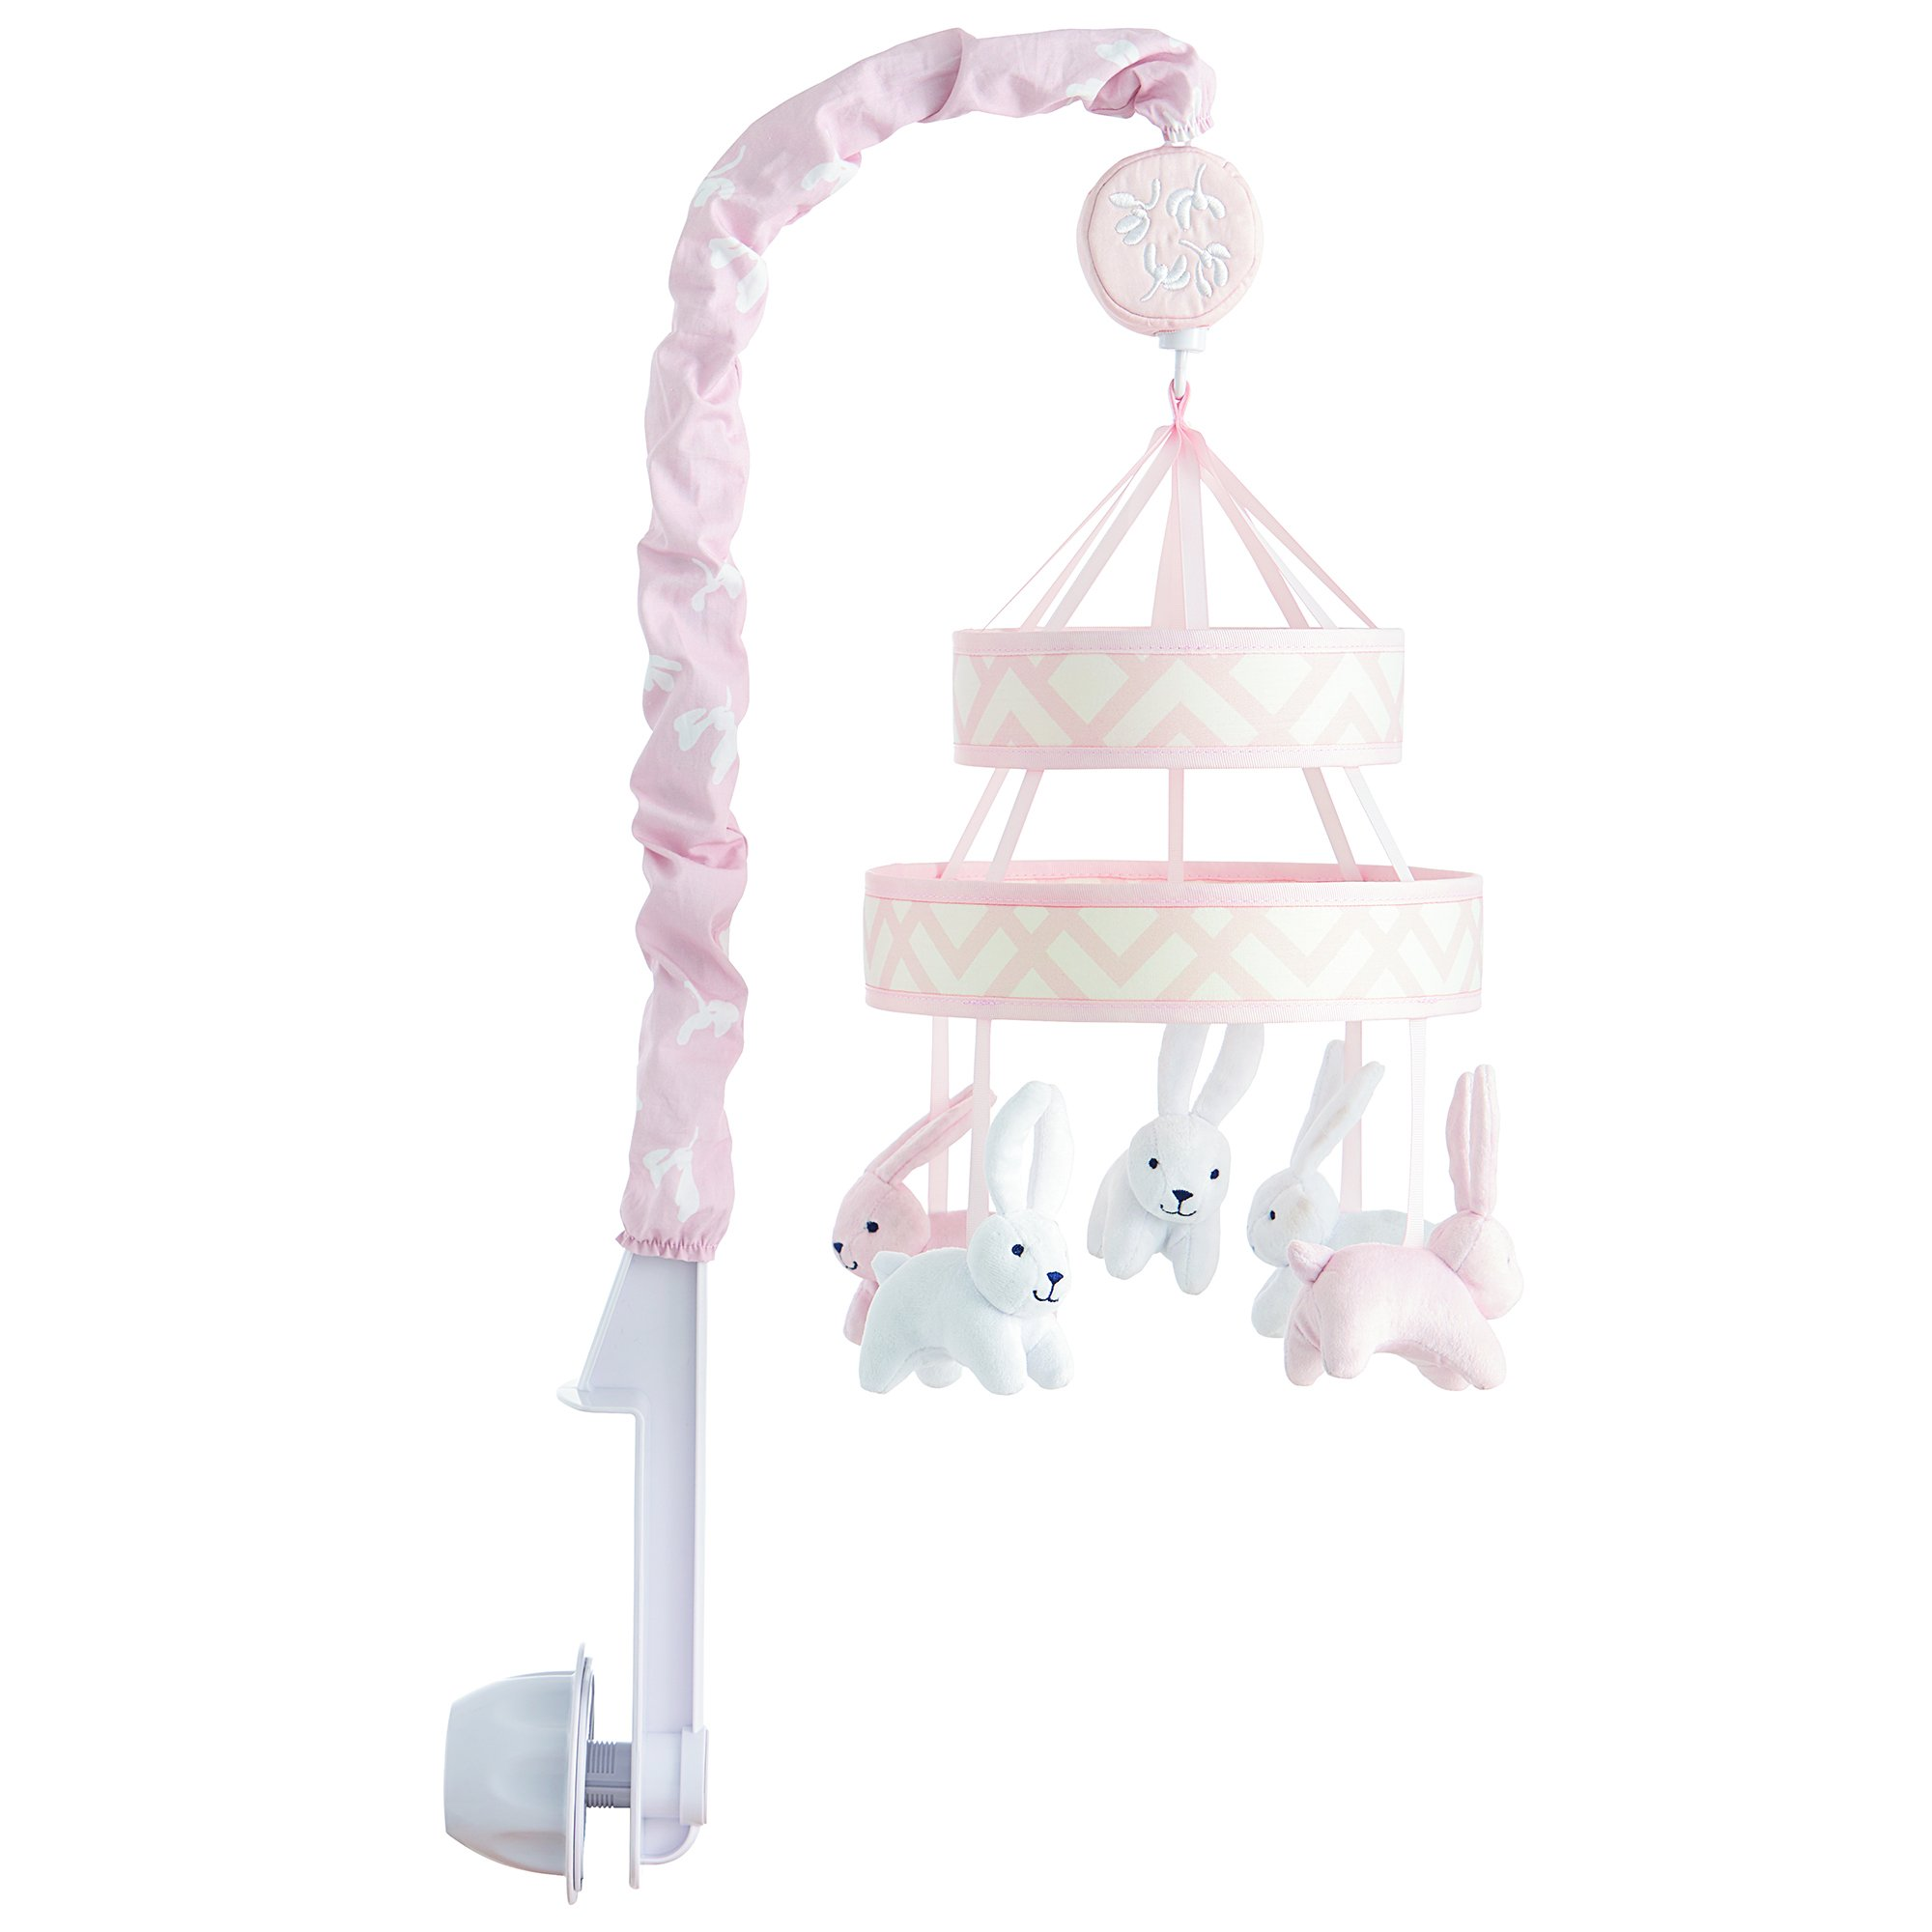 Ivanka Trump Wildflower Collection: Baby Mobile Crib Mobile Musical Mobile - Bunny Mobile in Pink/White